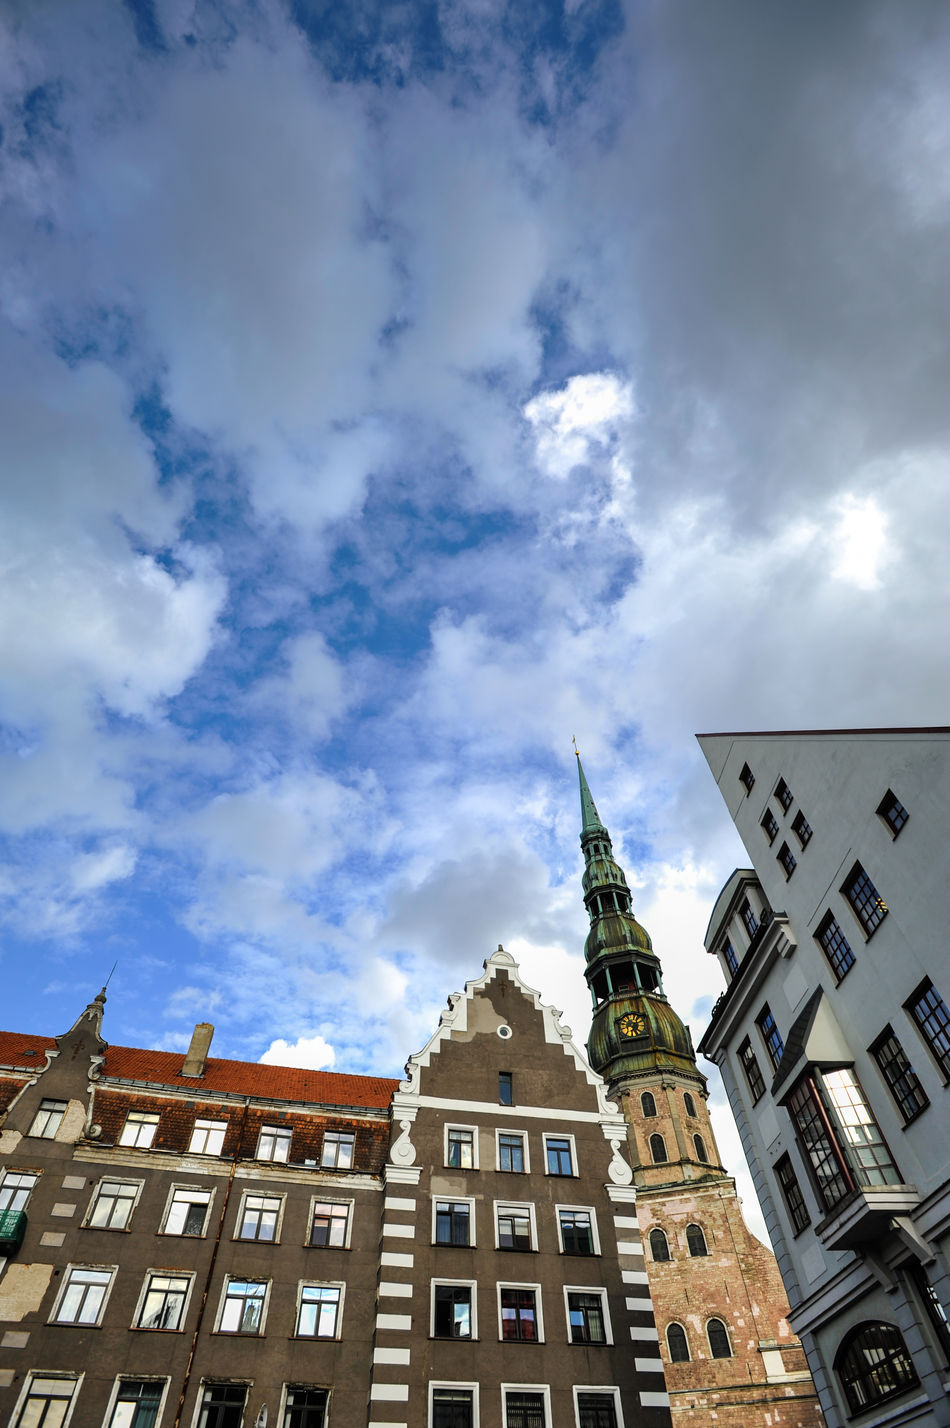 Saint Peter's church in Riga Architecture Basilica Church City City Life Cityscape Famous Place High Section Latvia Old Old Buildings Old House Old Town Residential Building Riga Tourism Travel Destinations Traveling Travelling Vecriga